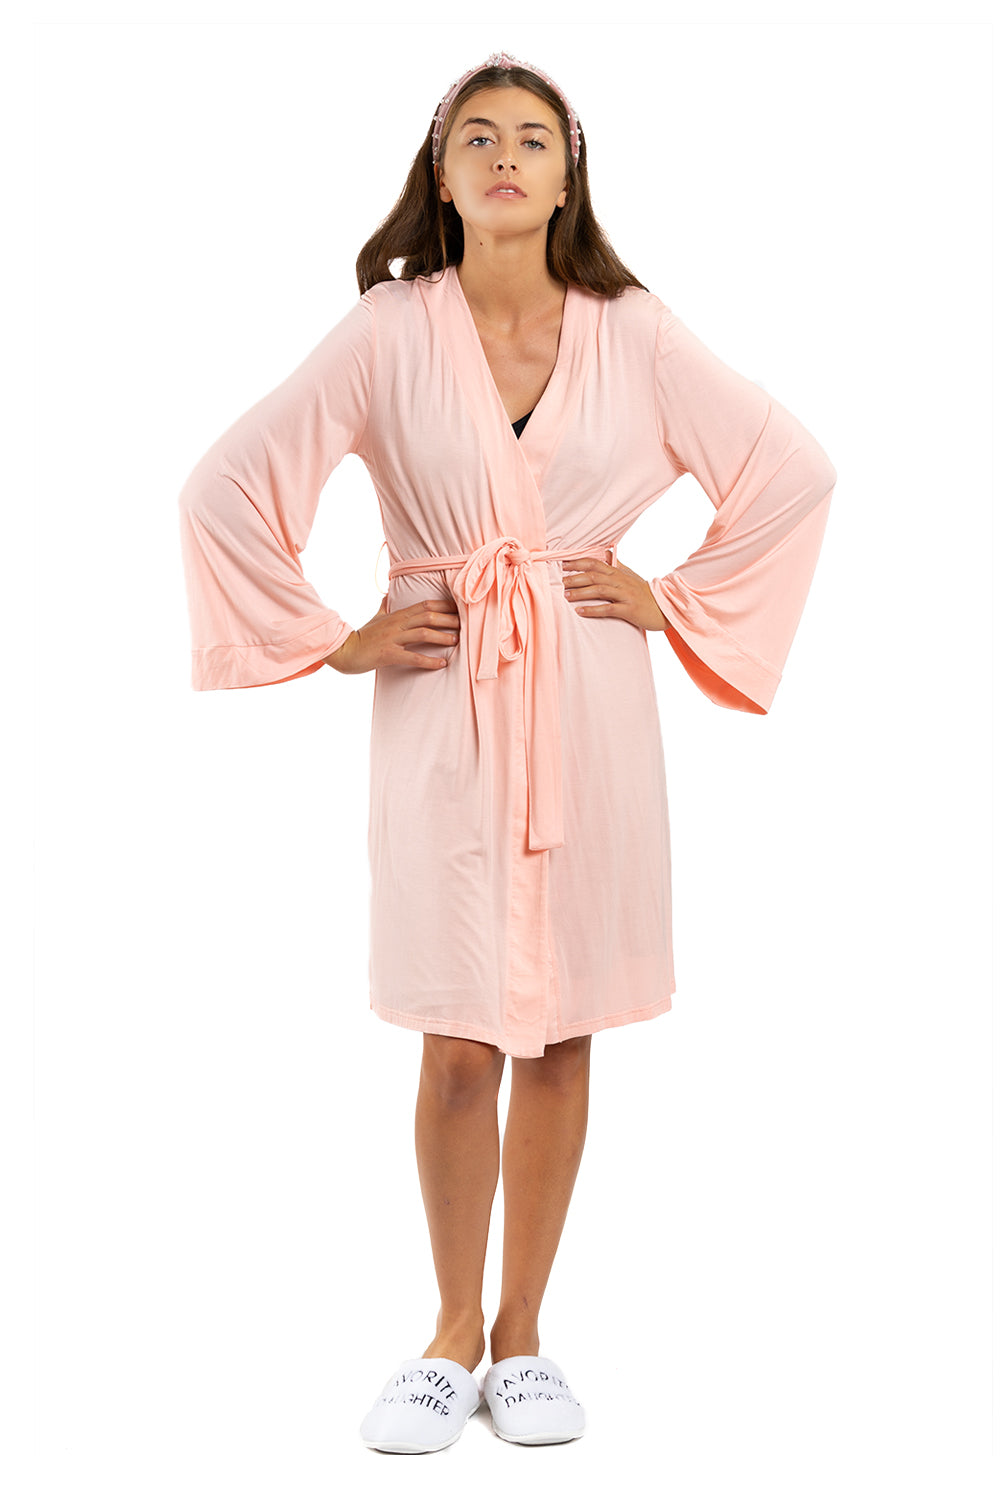 LIGHTWEIGHT ROBE - F*ck F*cking Cancer